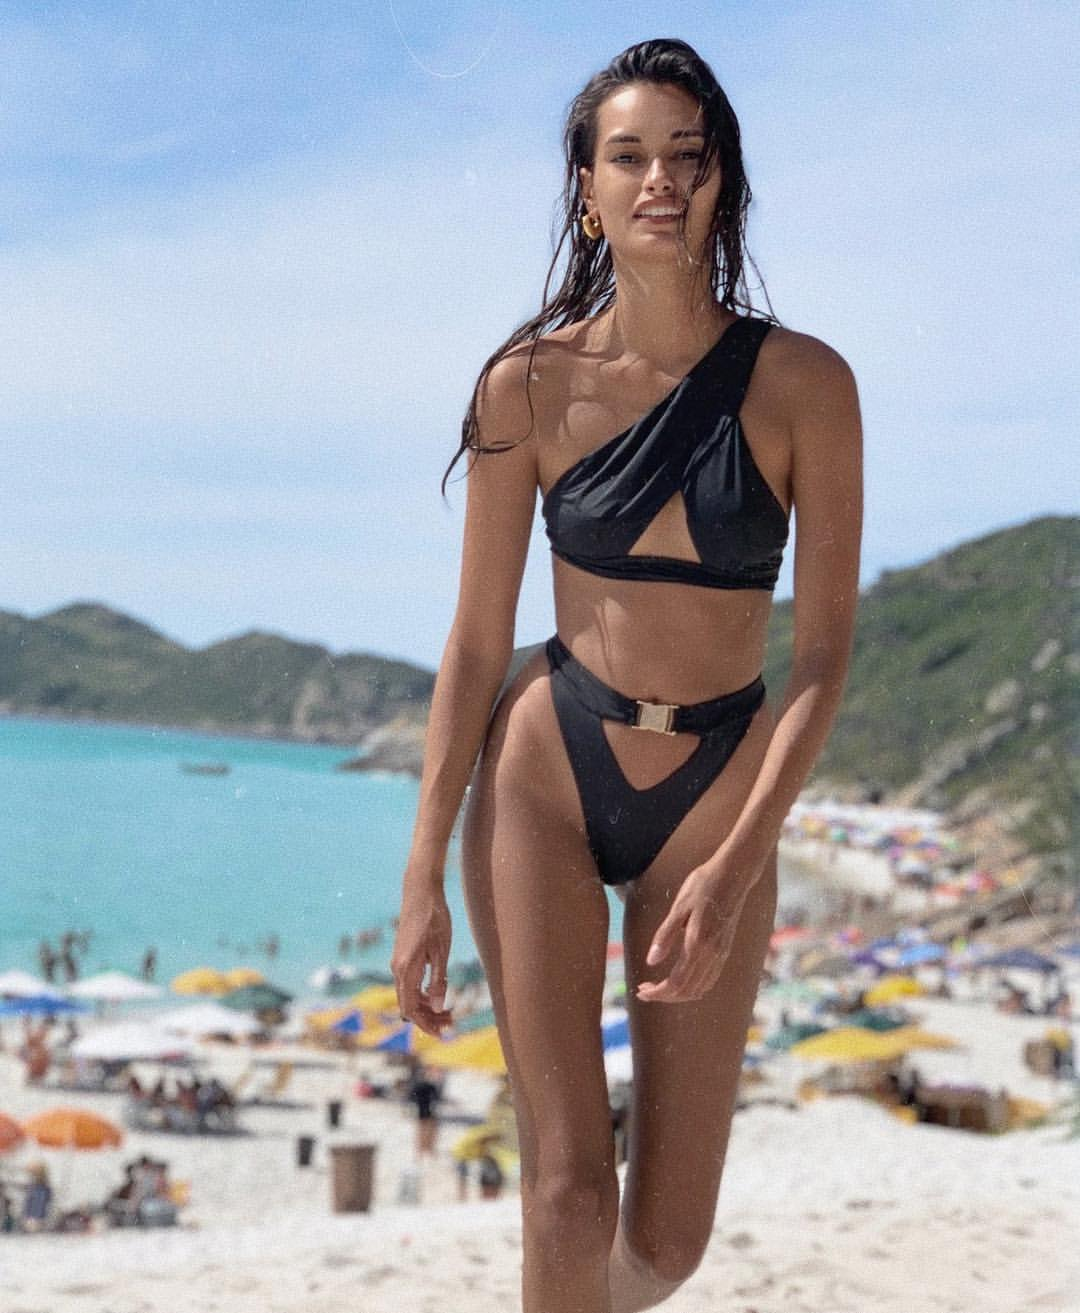 Bikini Gizele Oliveira naked (67 foto and video), Topless, Hot, Twitter, in bikini 2020